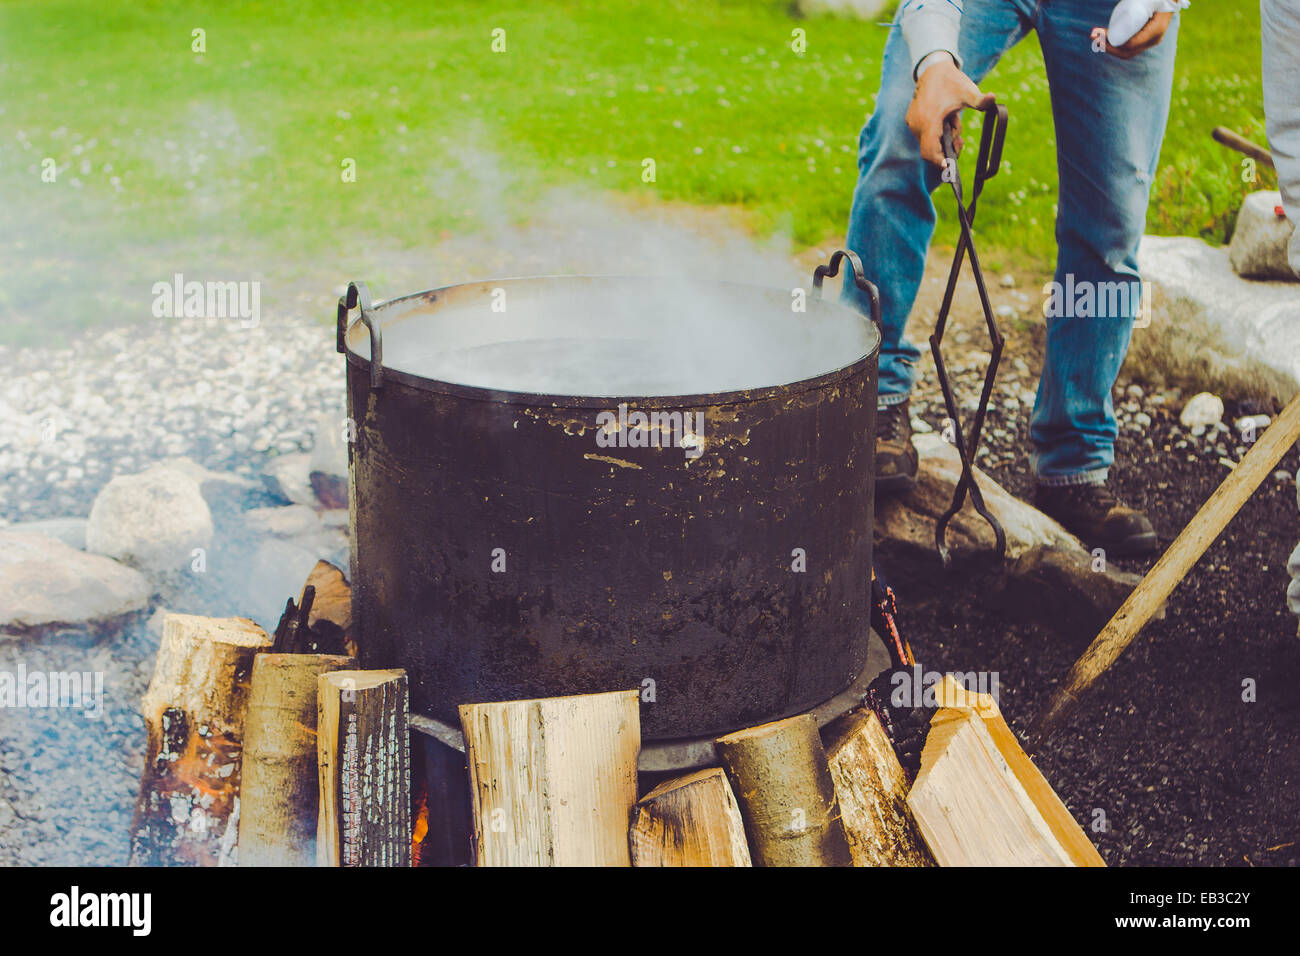 Man preparing fish boil - Stock Image